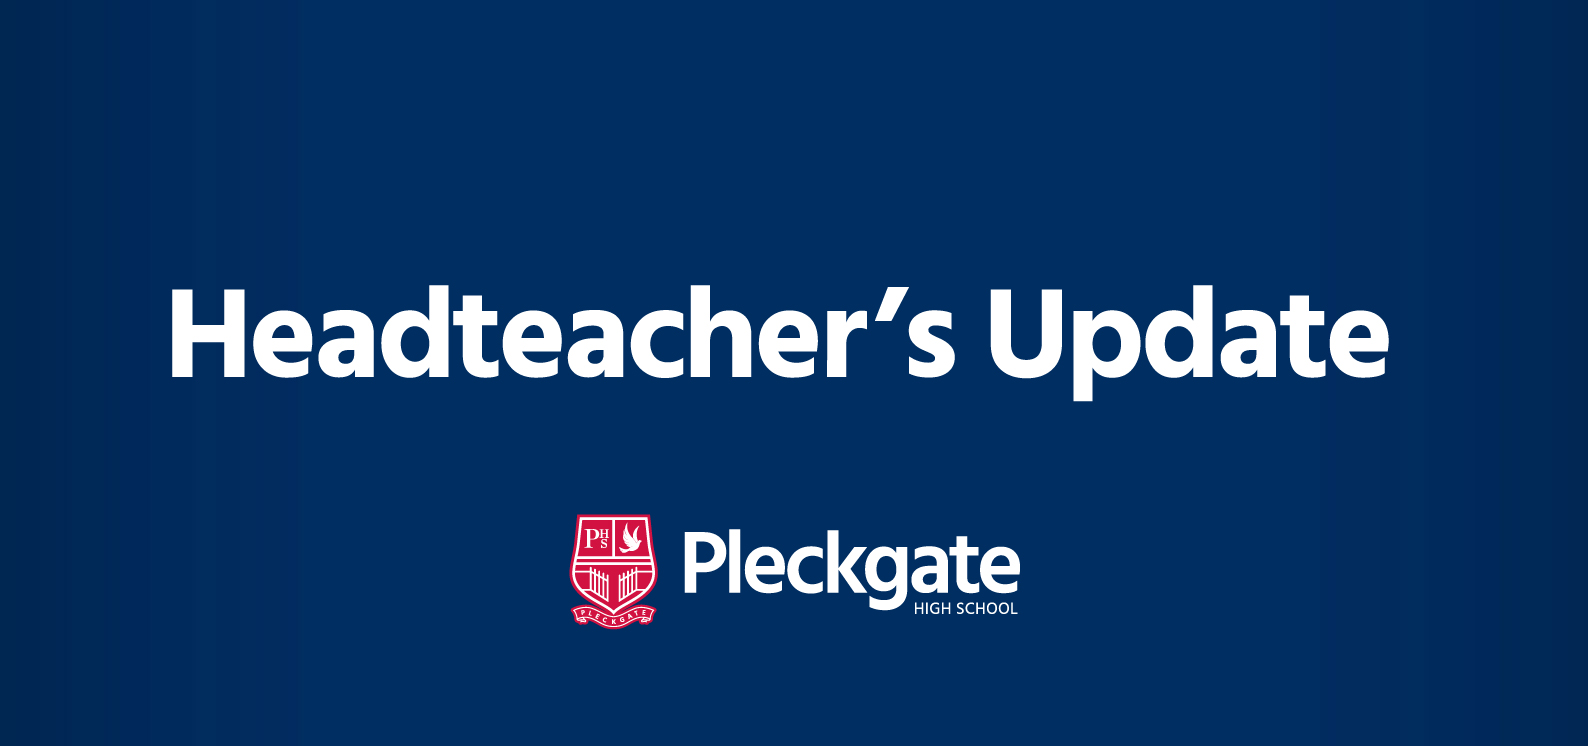 Headteacher's Update – December 2016